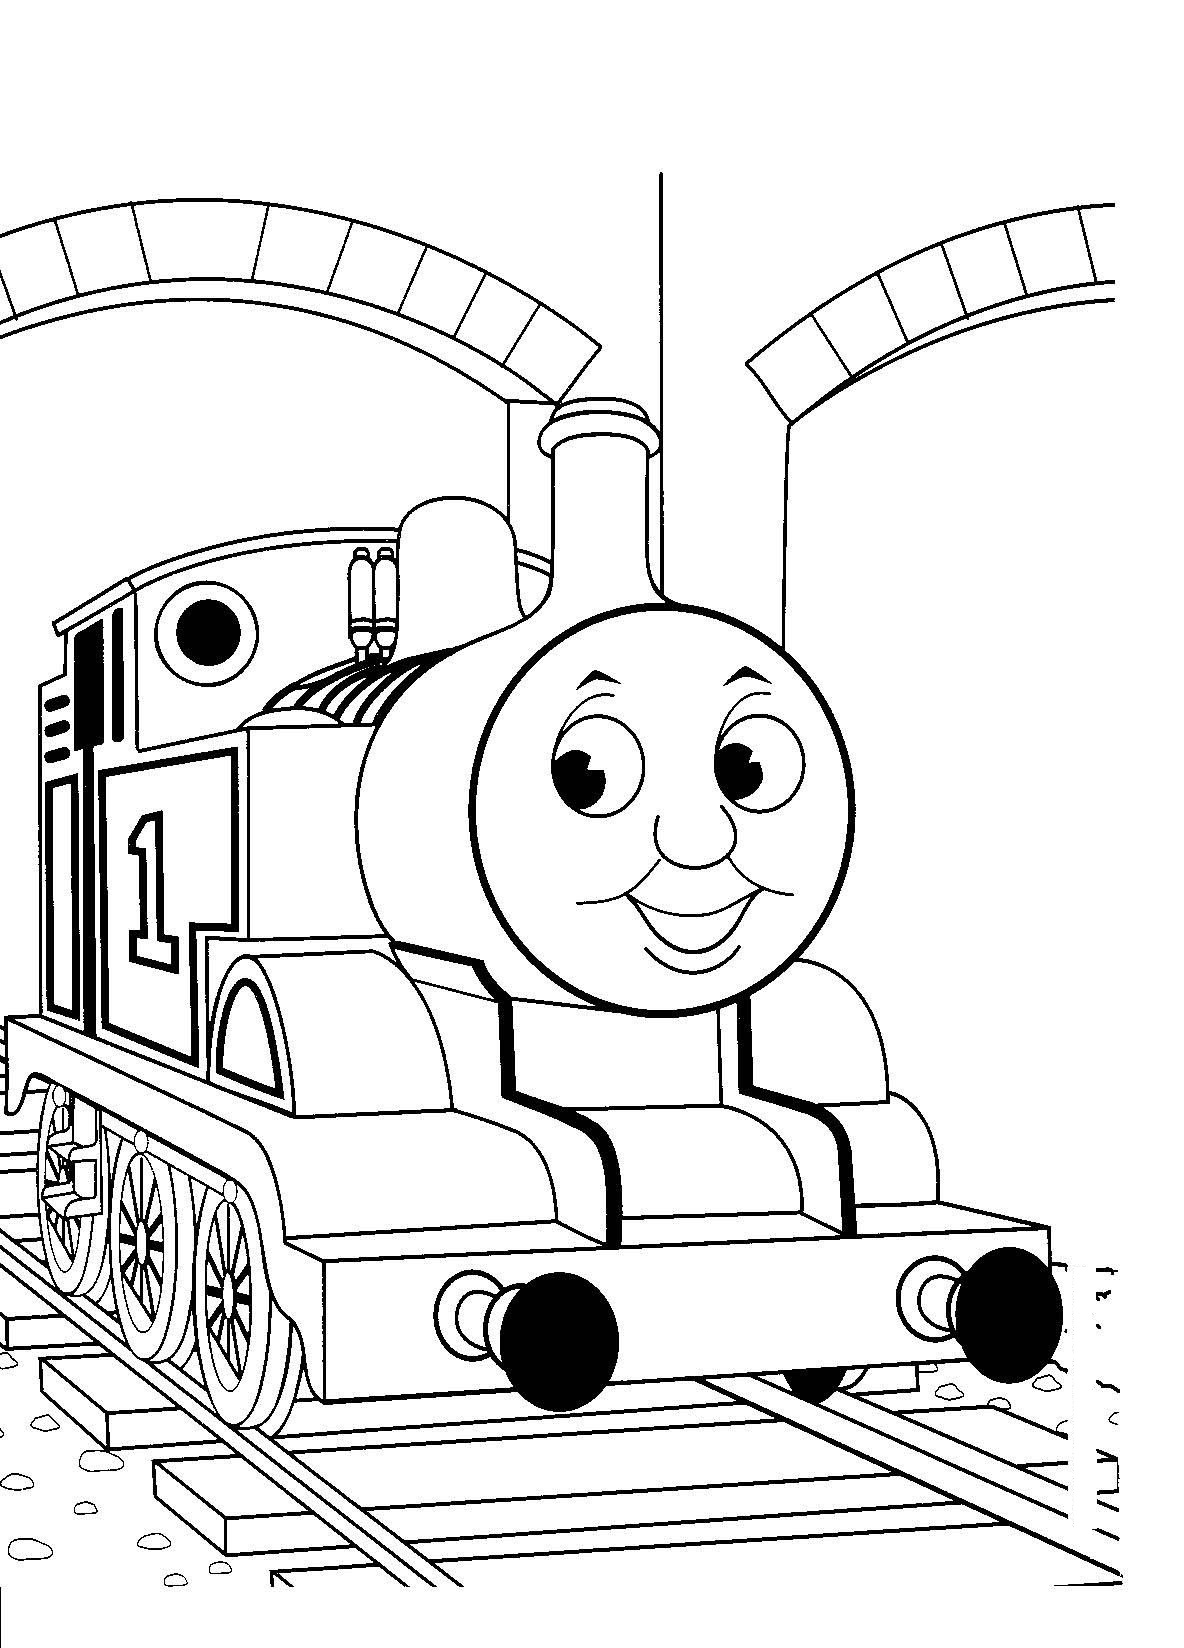 Free coloring in pages - Free Printable Thomas The Train Coloring Pages